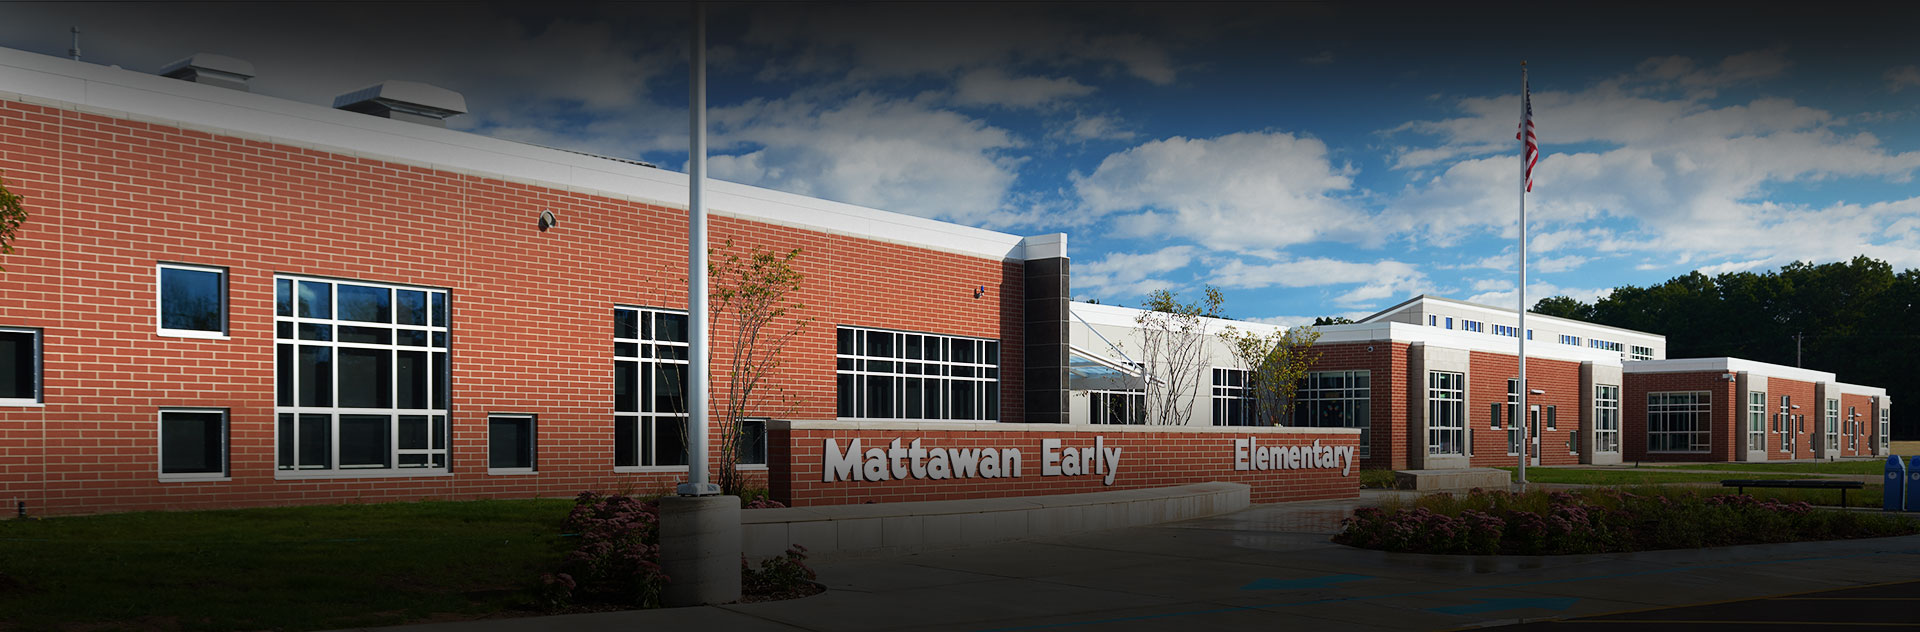 Mattawan-Early-Elementary